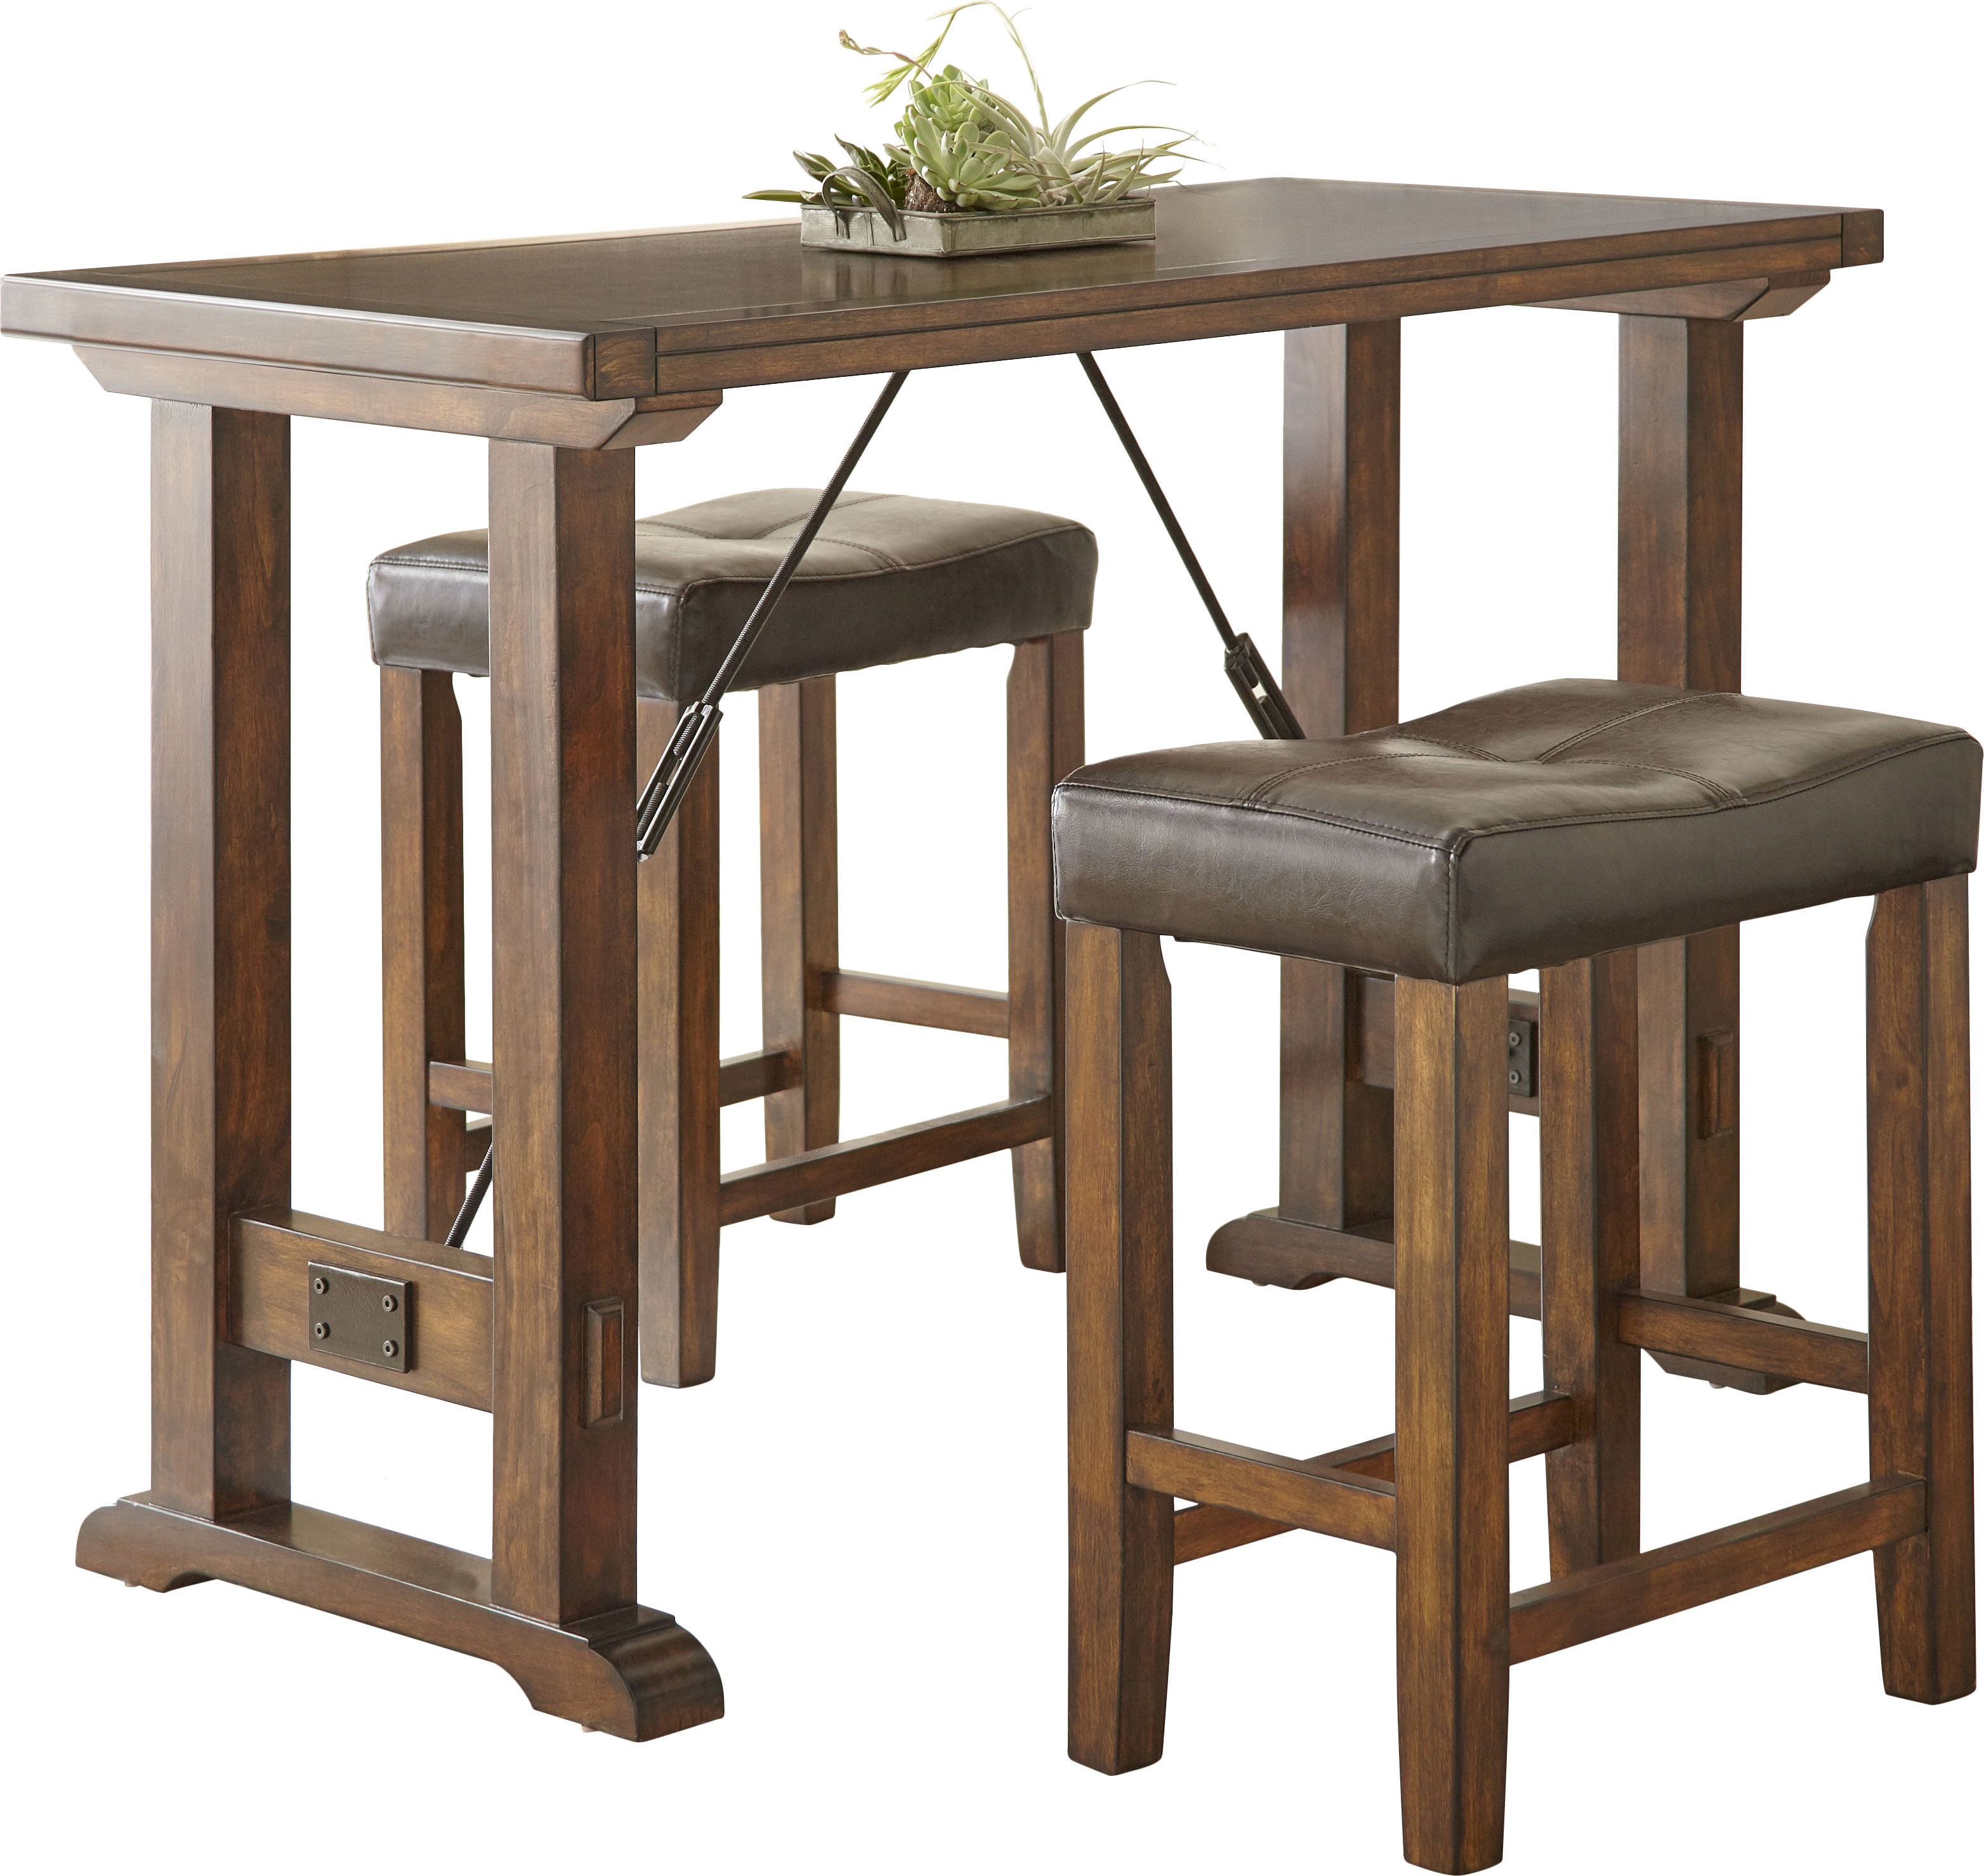 Best And Newest Norrell 3 Piece Counter Height Dining Set Inside Penelope 3 Piece Counter Height Wood Dining Sets (View 3 of 20)